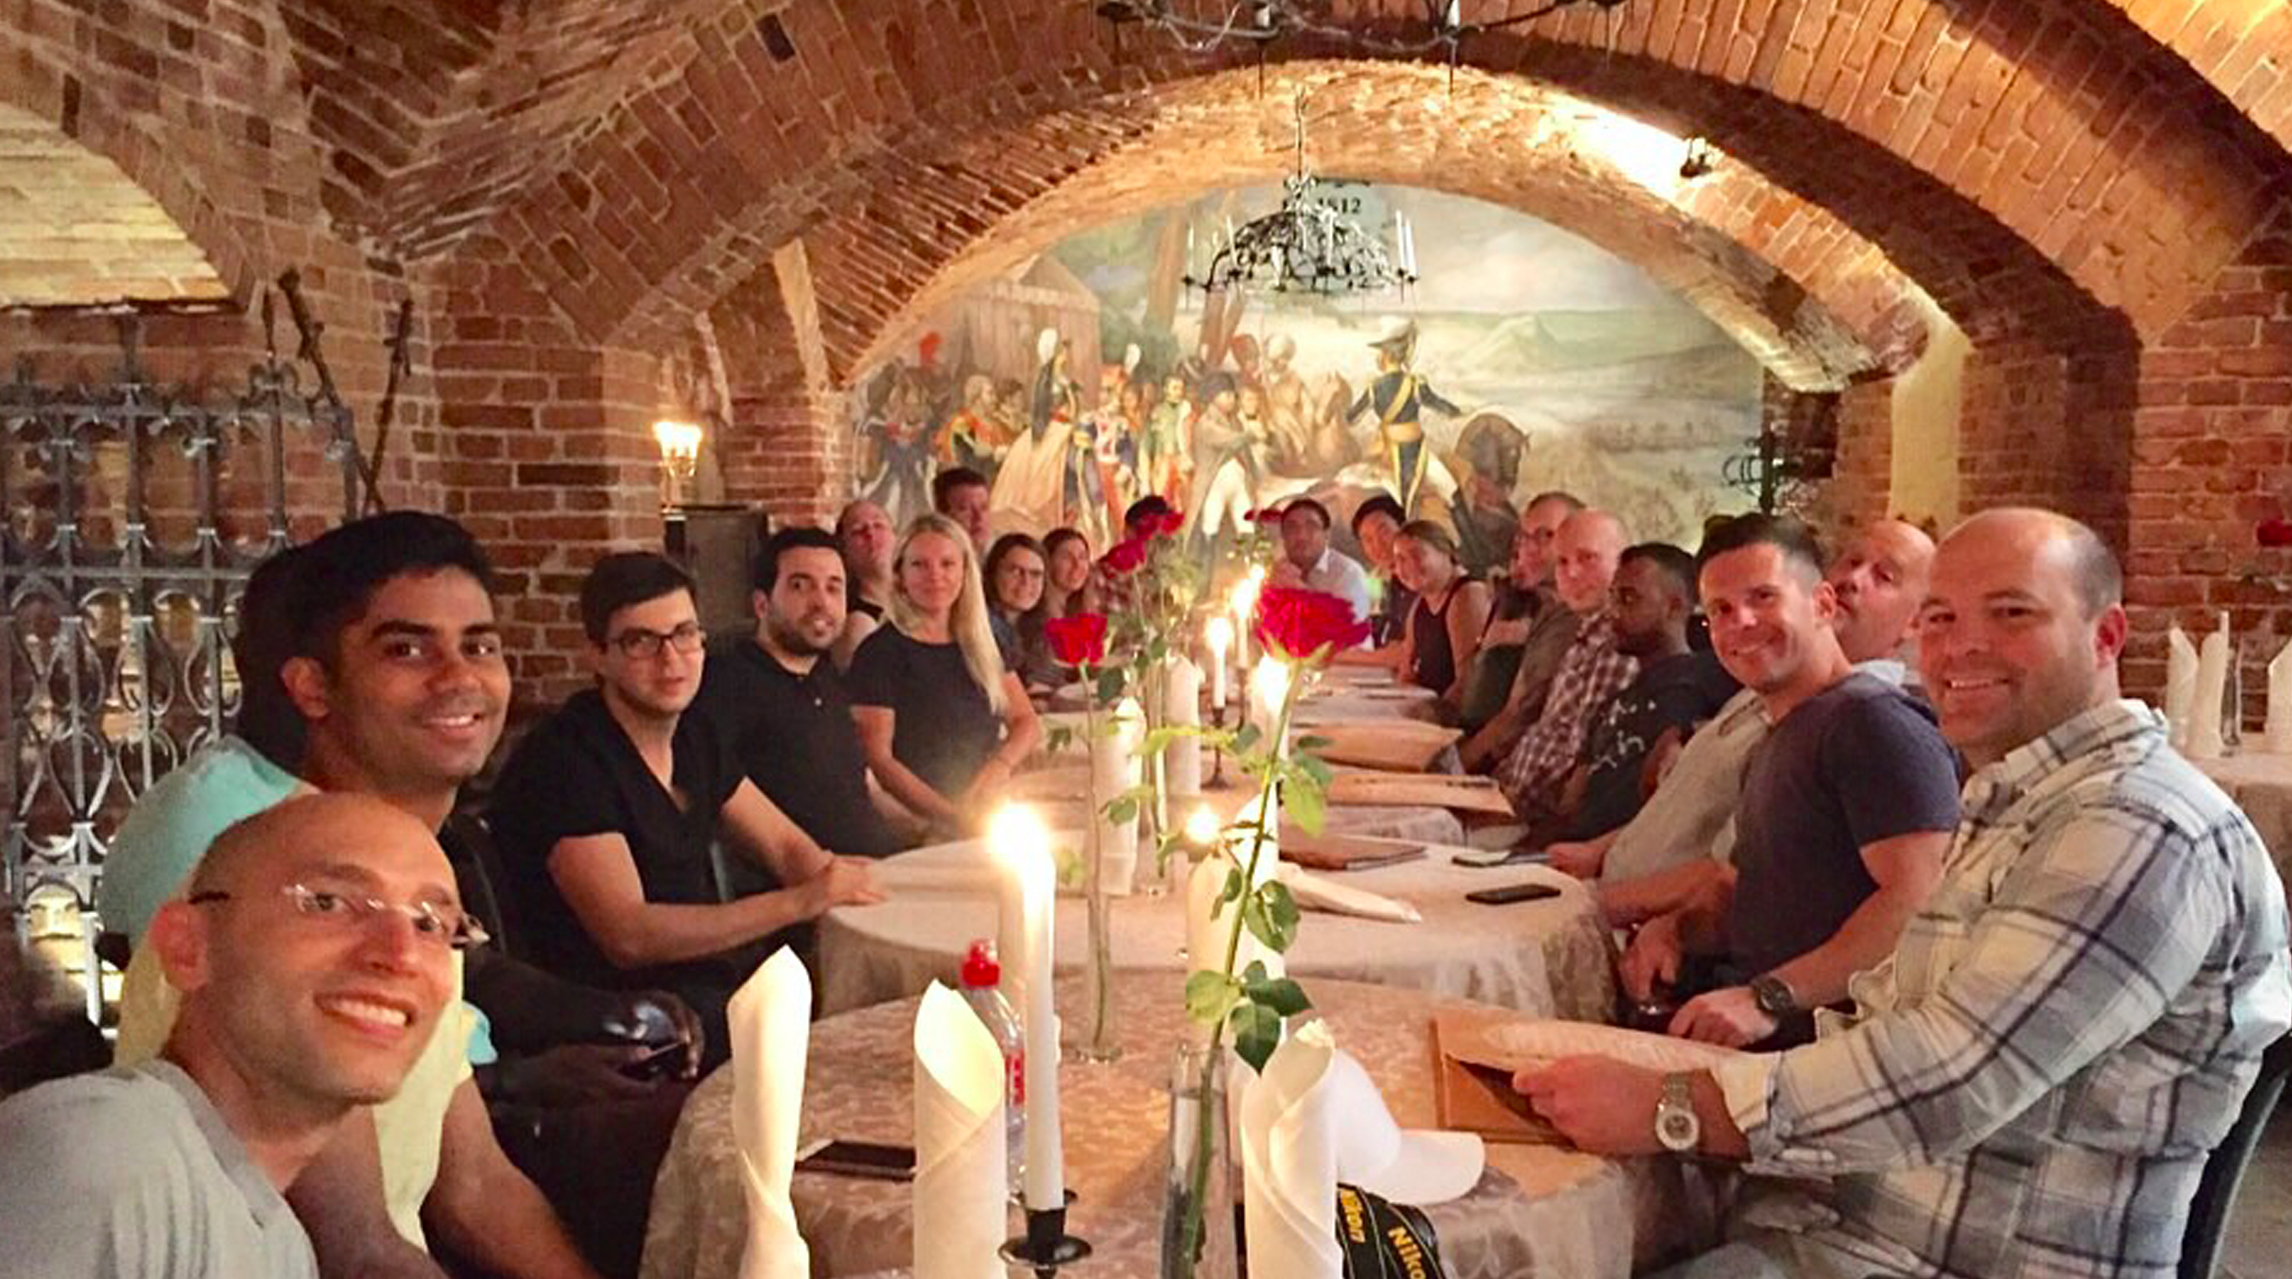 A team dinner in Kaunas, Lithuania